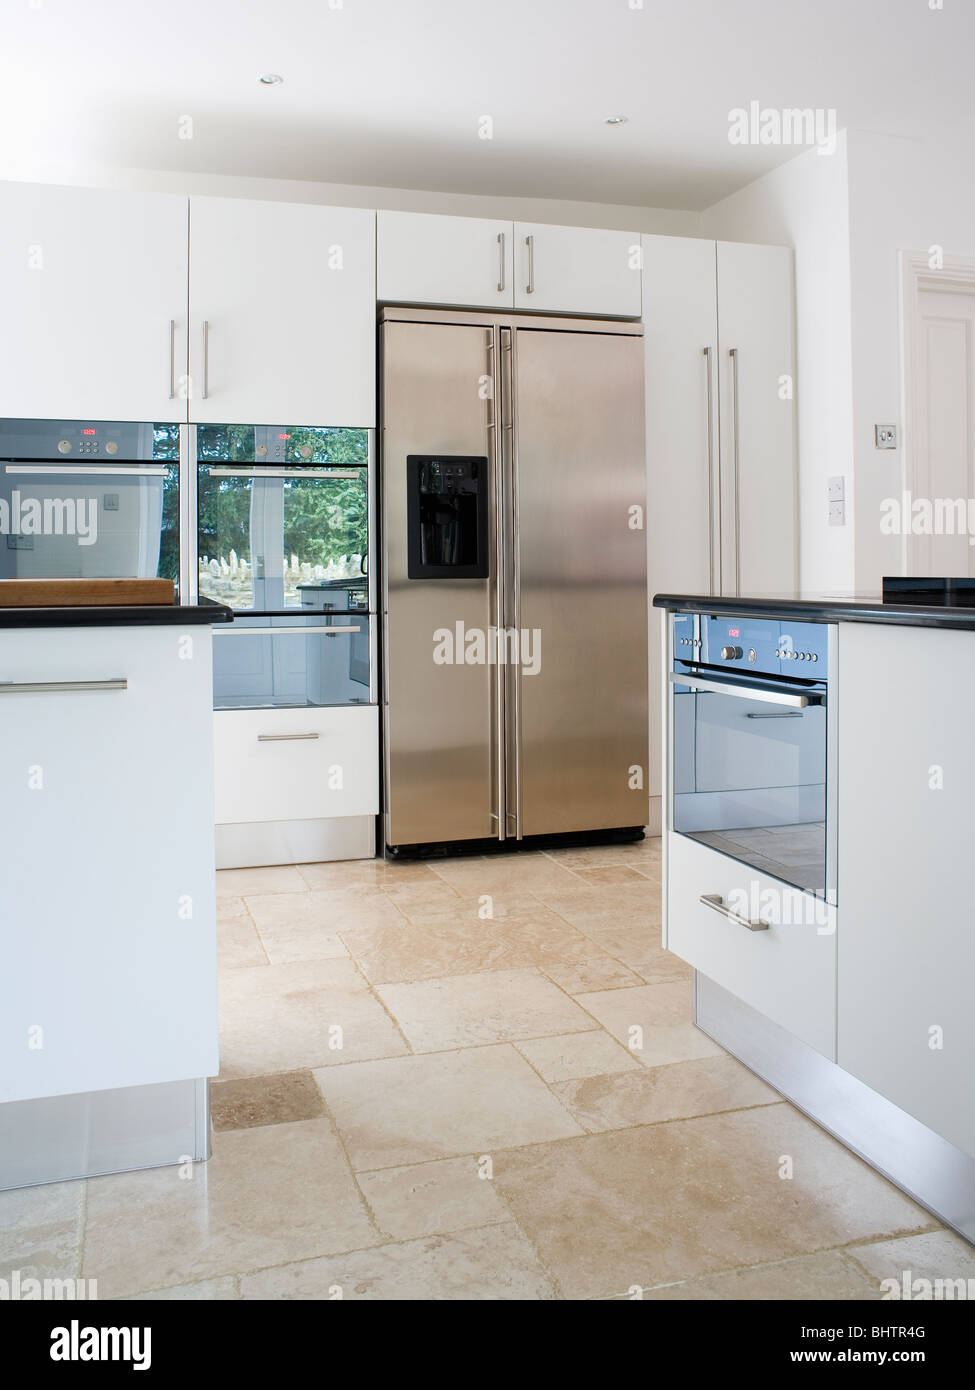 Stainless Steel American Style Fridge Freezer In Modern White